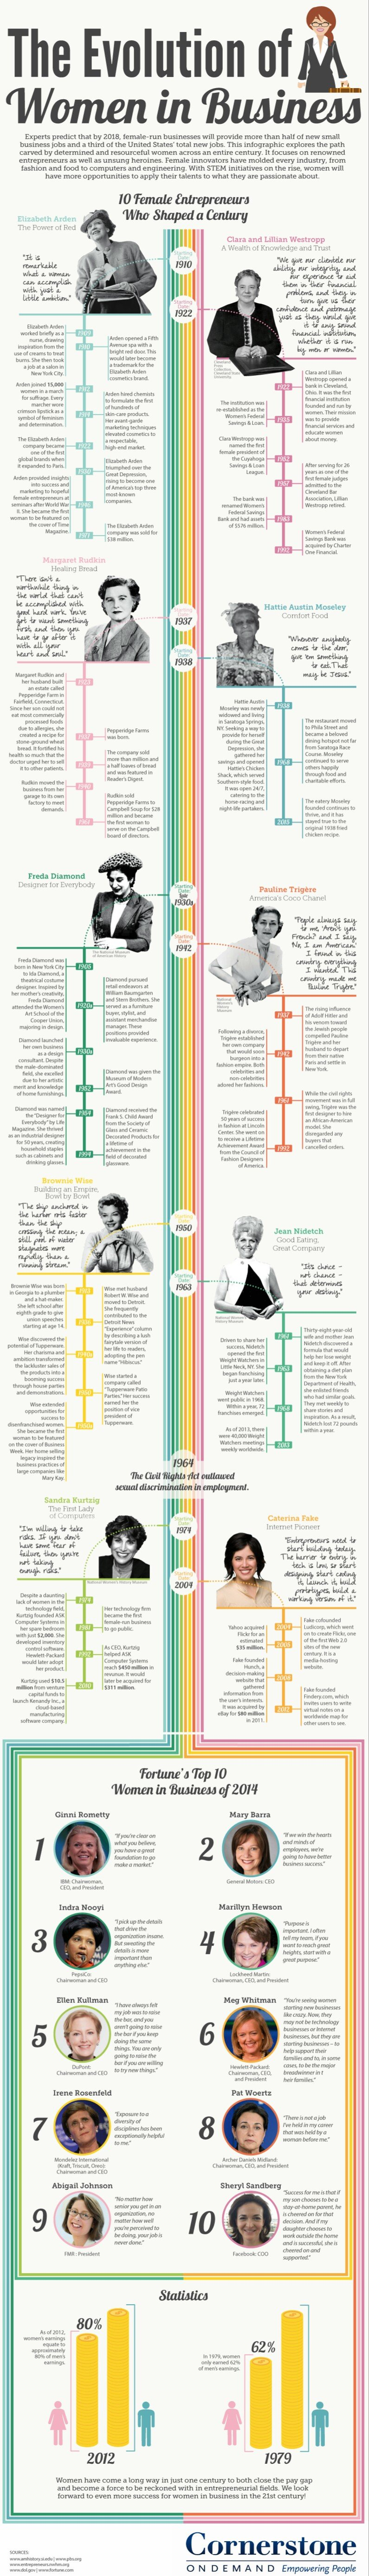 the evolution of women in business #infographic